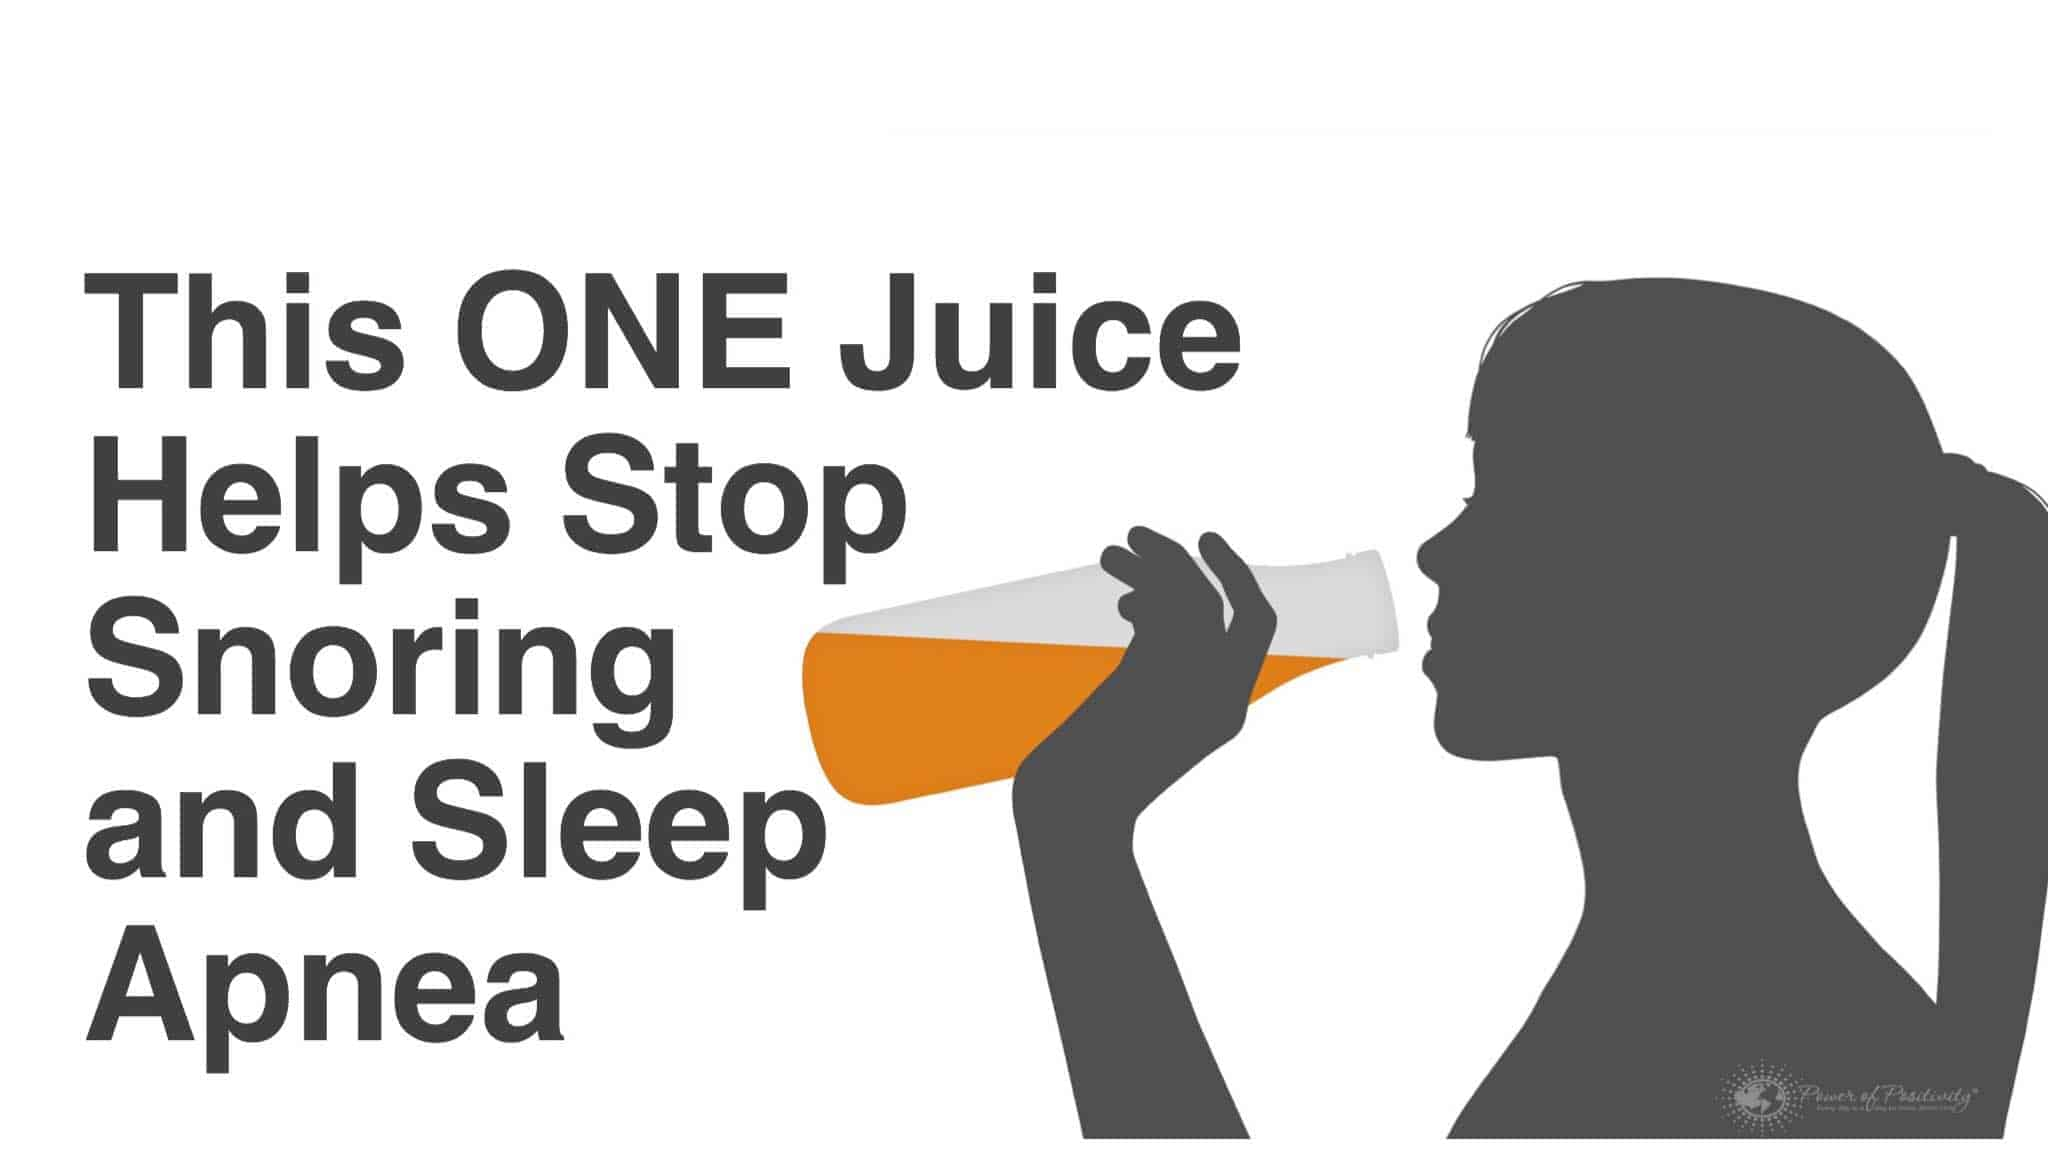 Best Anti Snoring Device 2016 How To Stop Snoring And Sleep Apnea With One Simple Juice